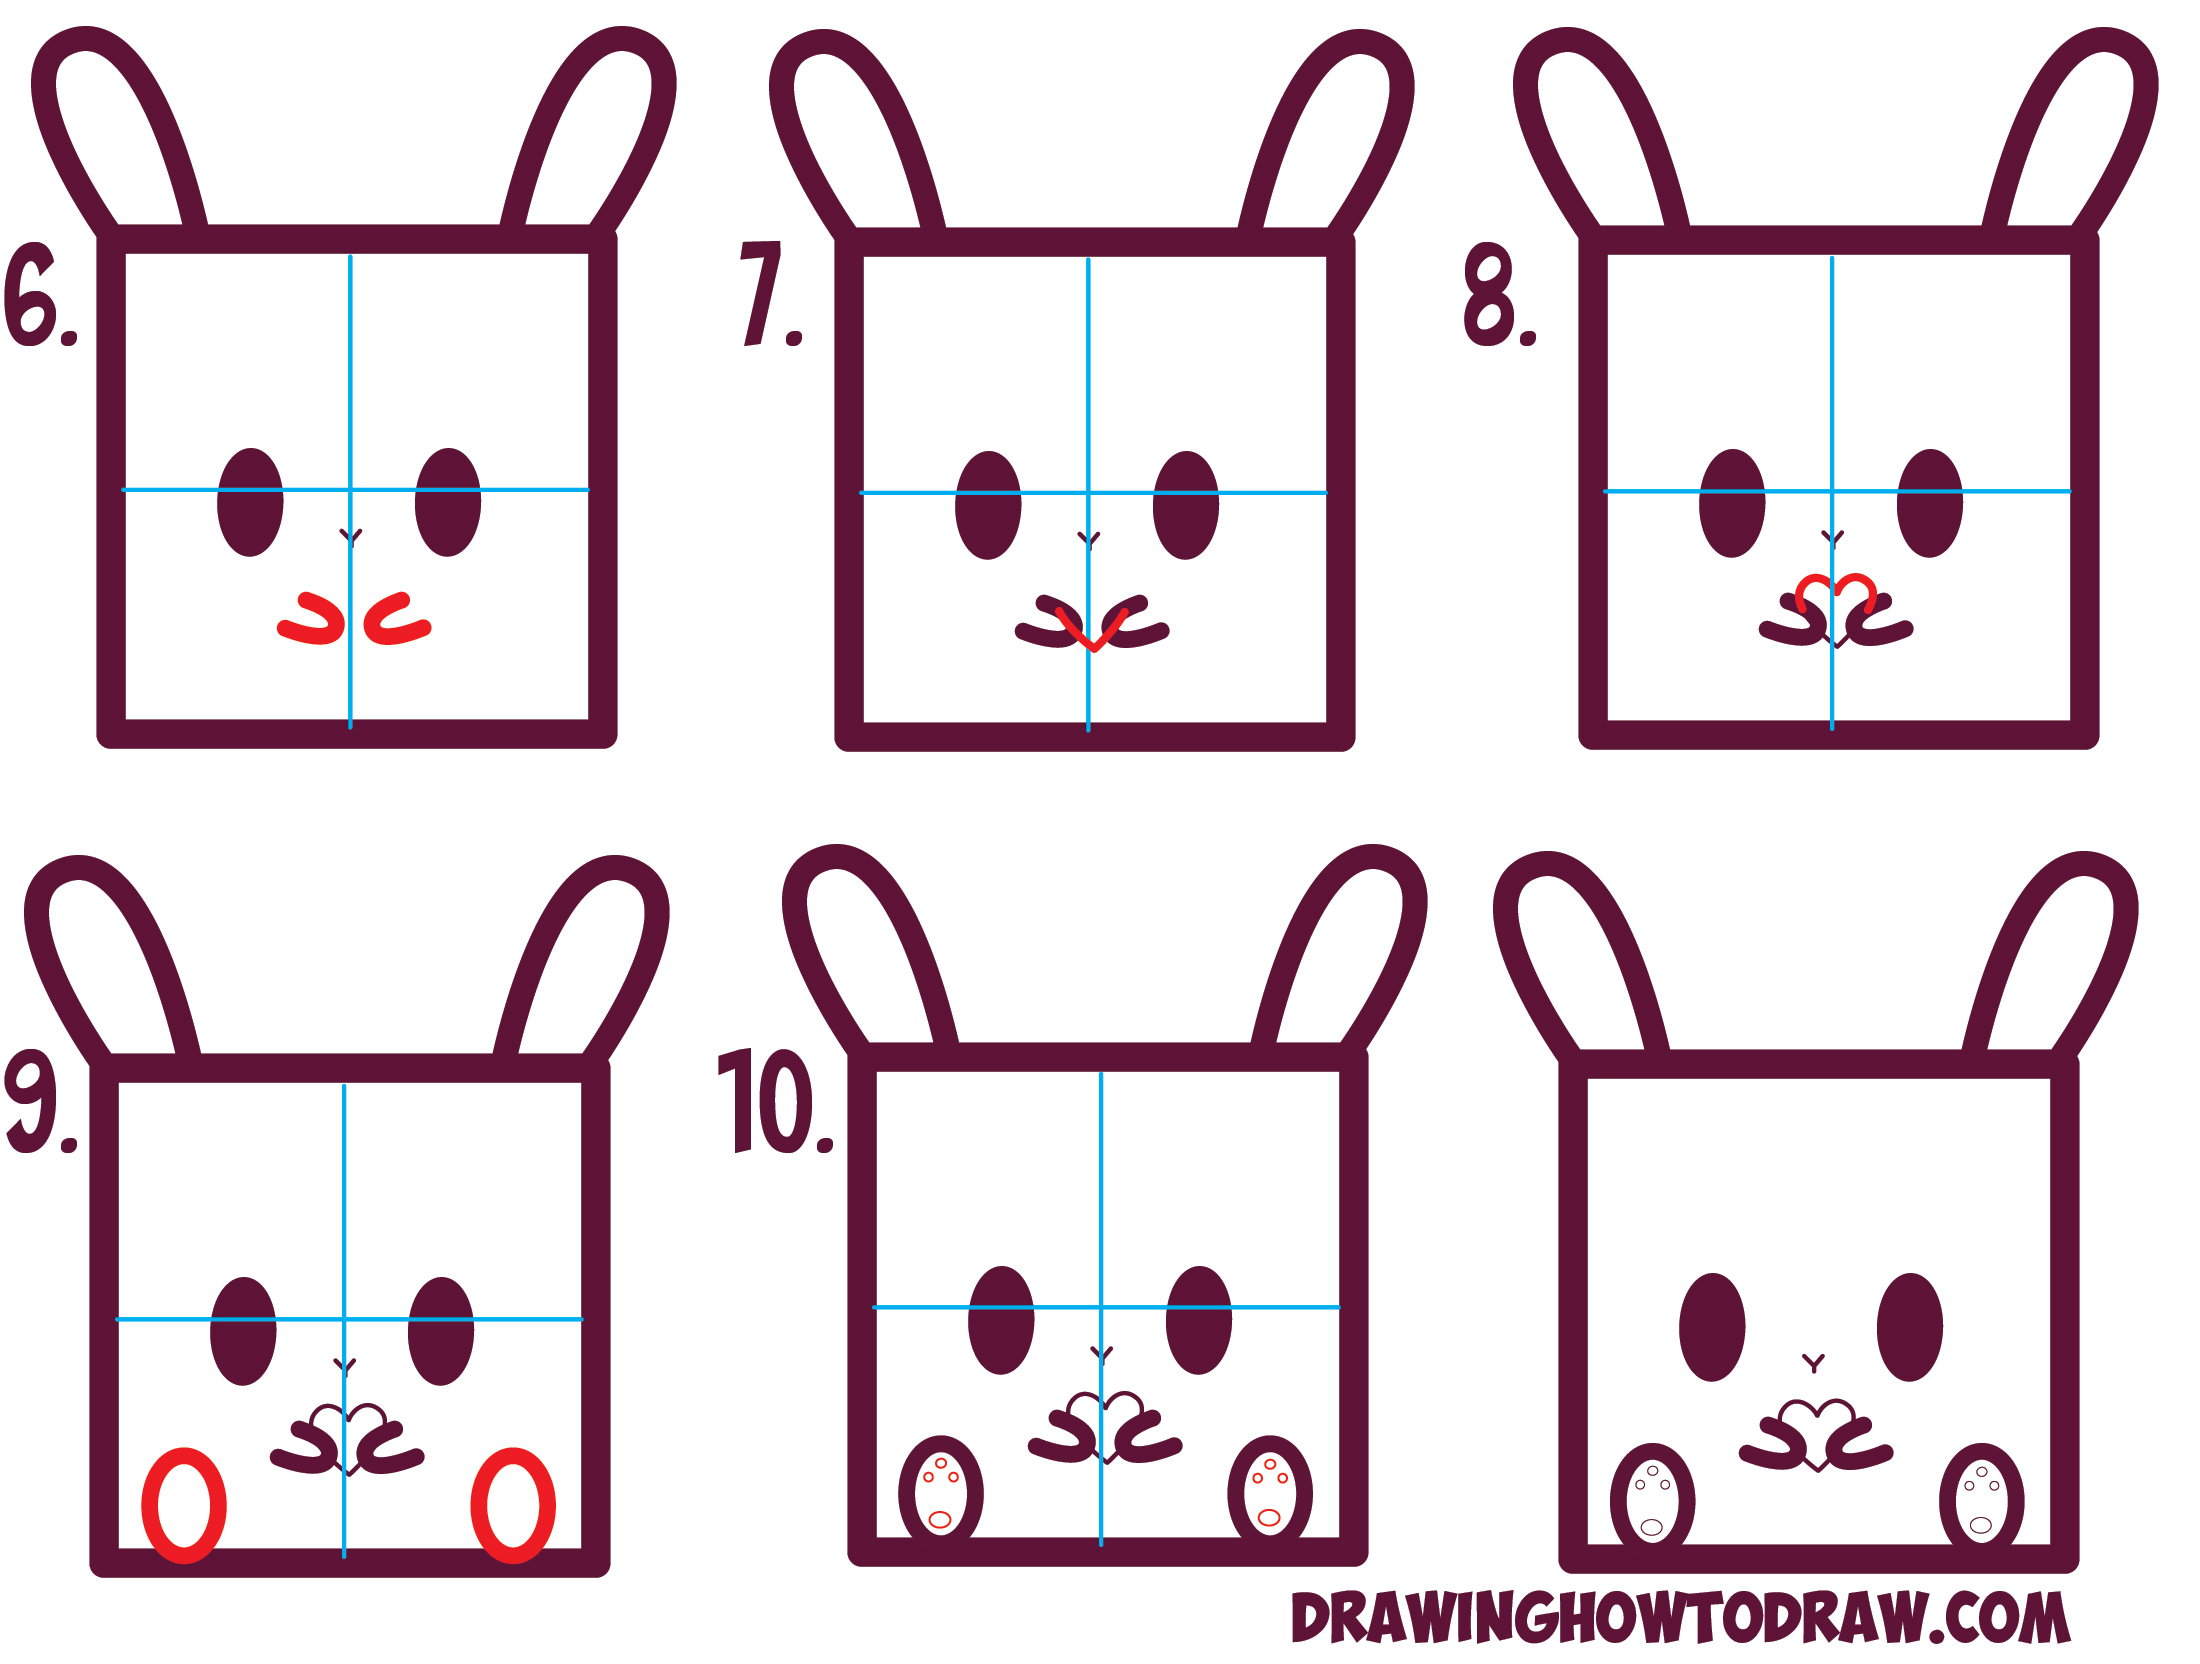 Learn how to draw cute kawaii bunnies bunny from squares with simple steps drawing